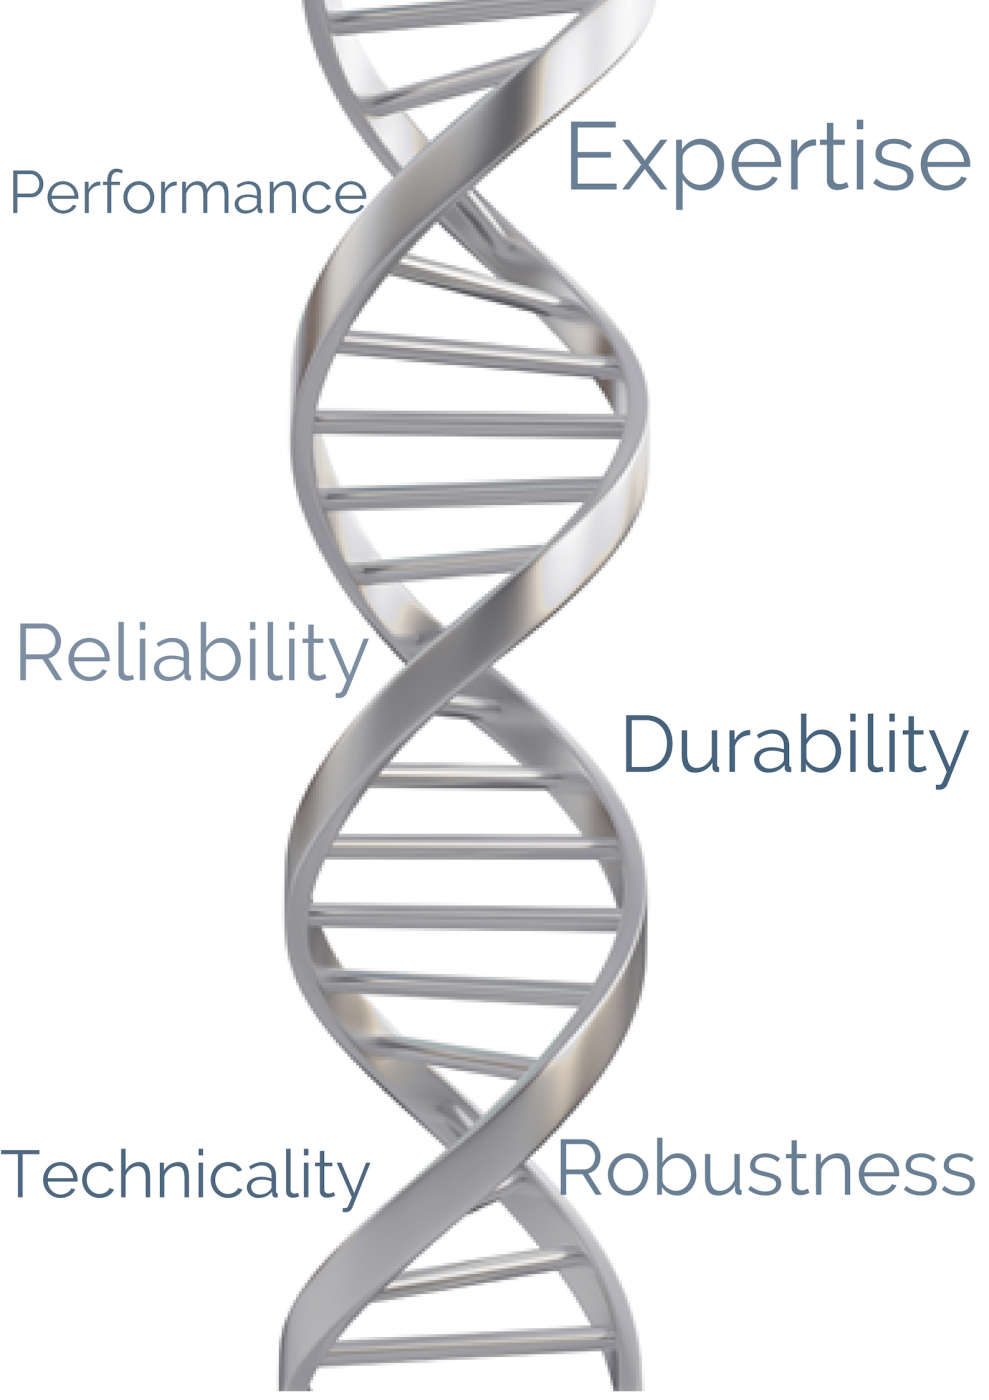 SMO's DNA Performance Expertise Durability Robustness Reliability Technicality